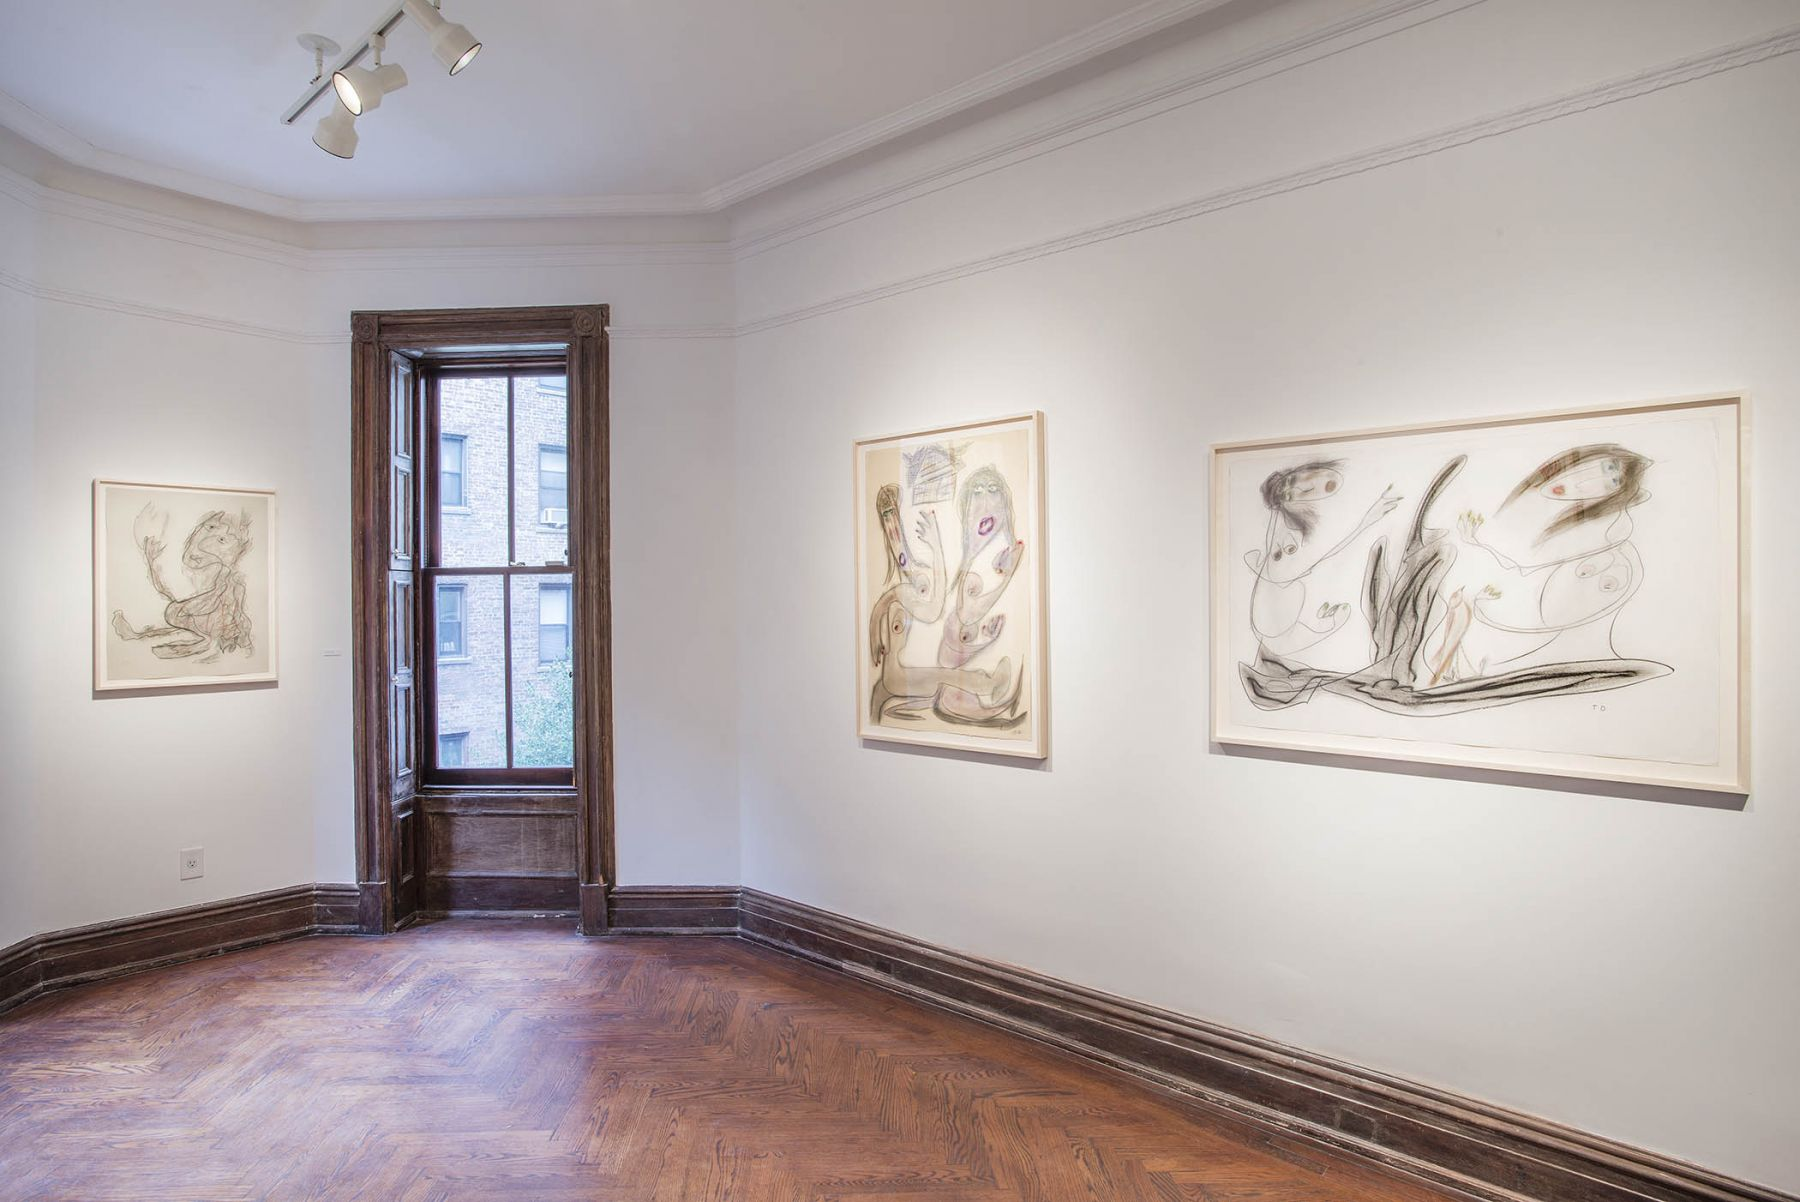 Works on Paper (Installation View), 118 East 64th Street, 2015